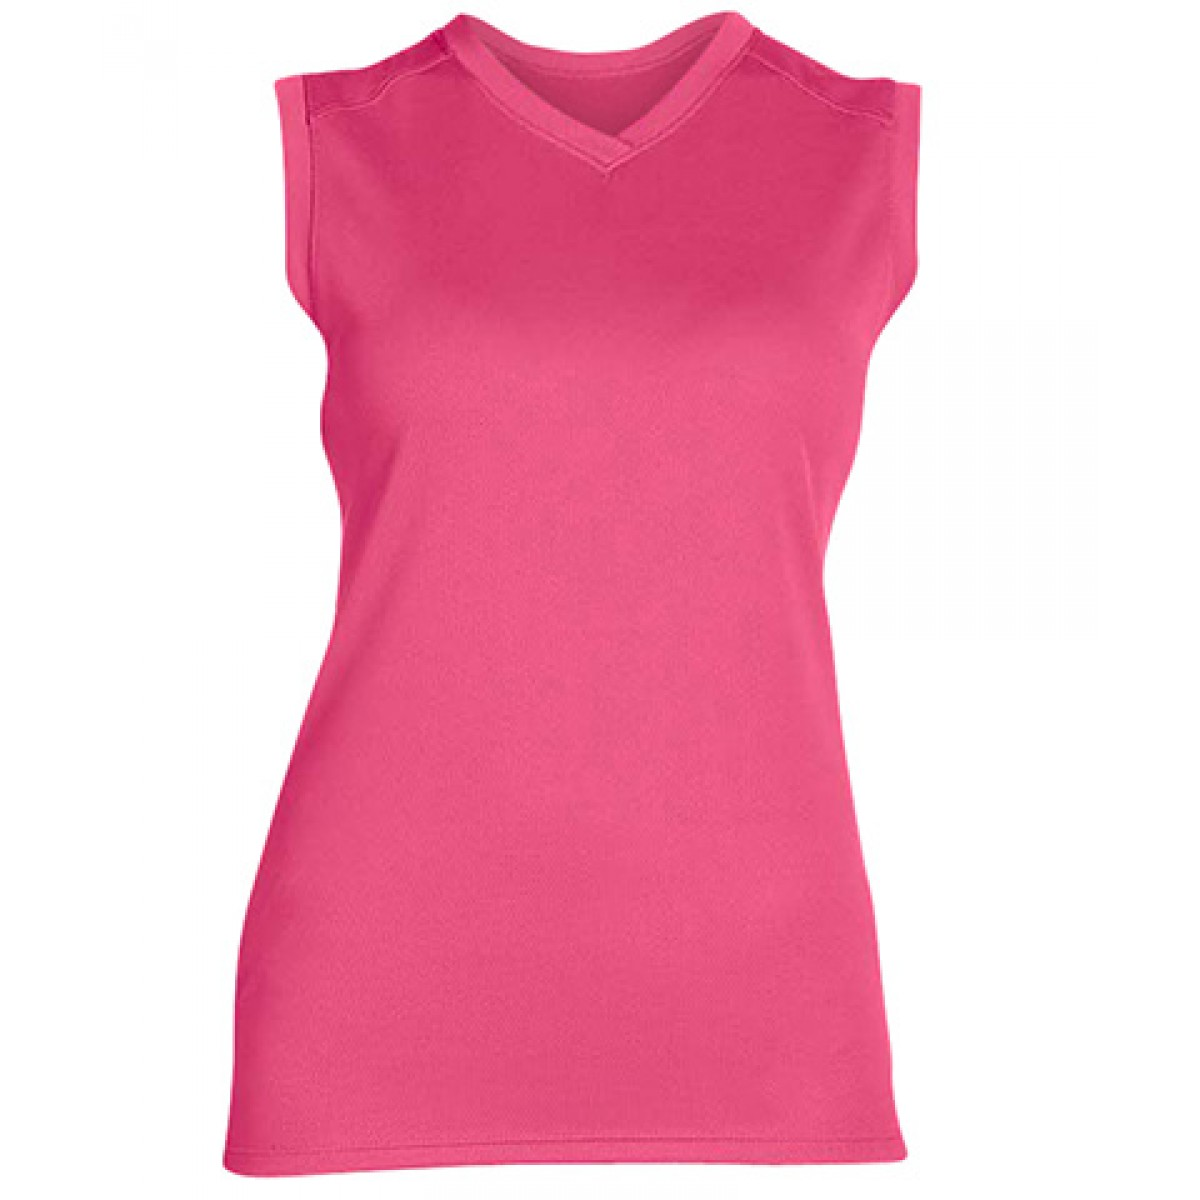 Ladies' Athletic V-Neck Workout T-Shirt-Neon Pink-M